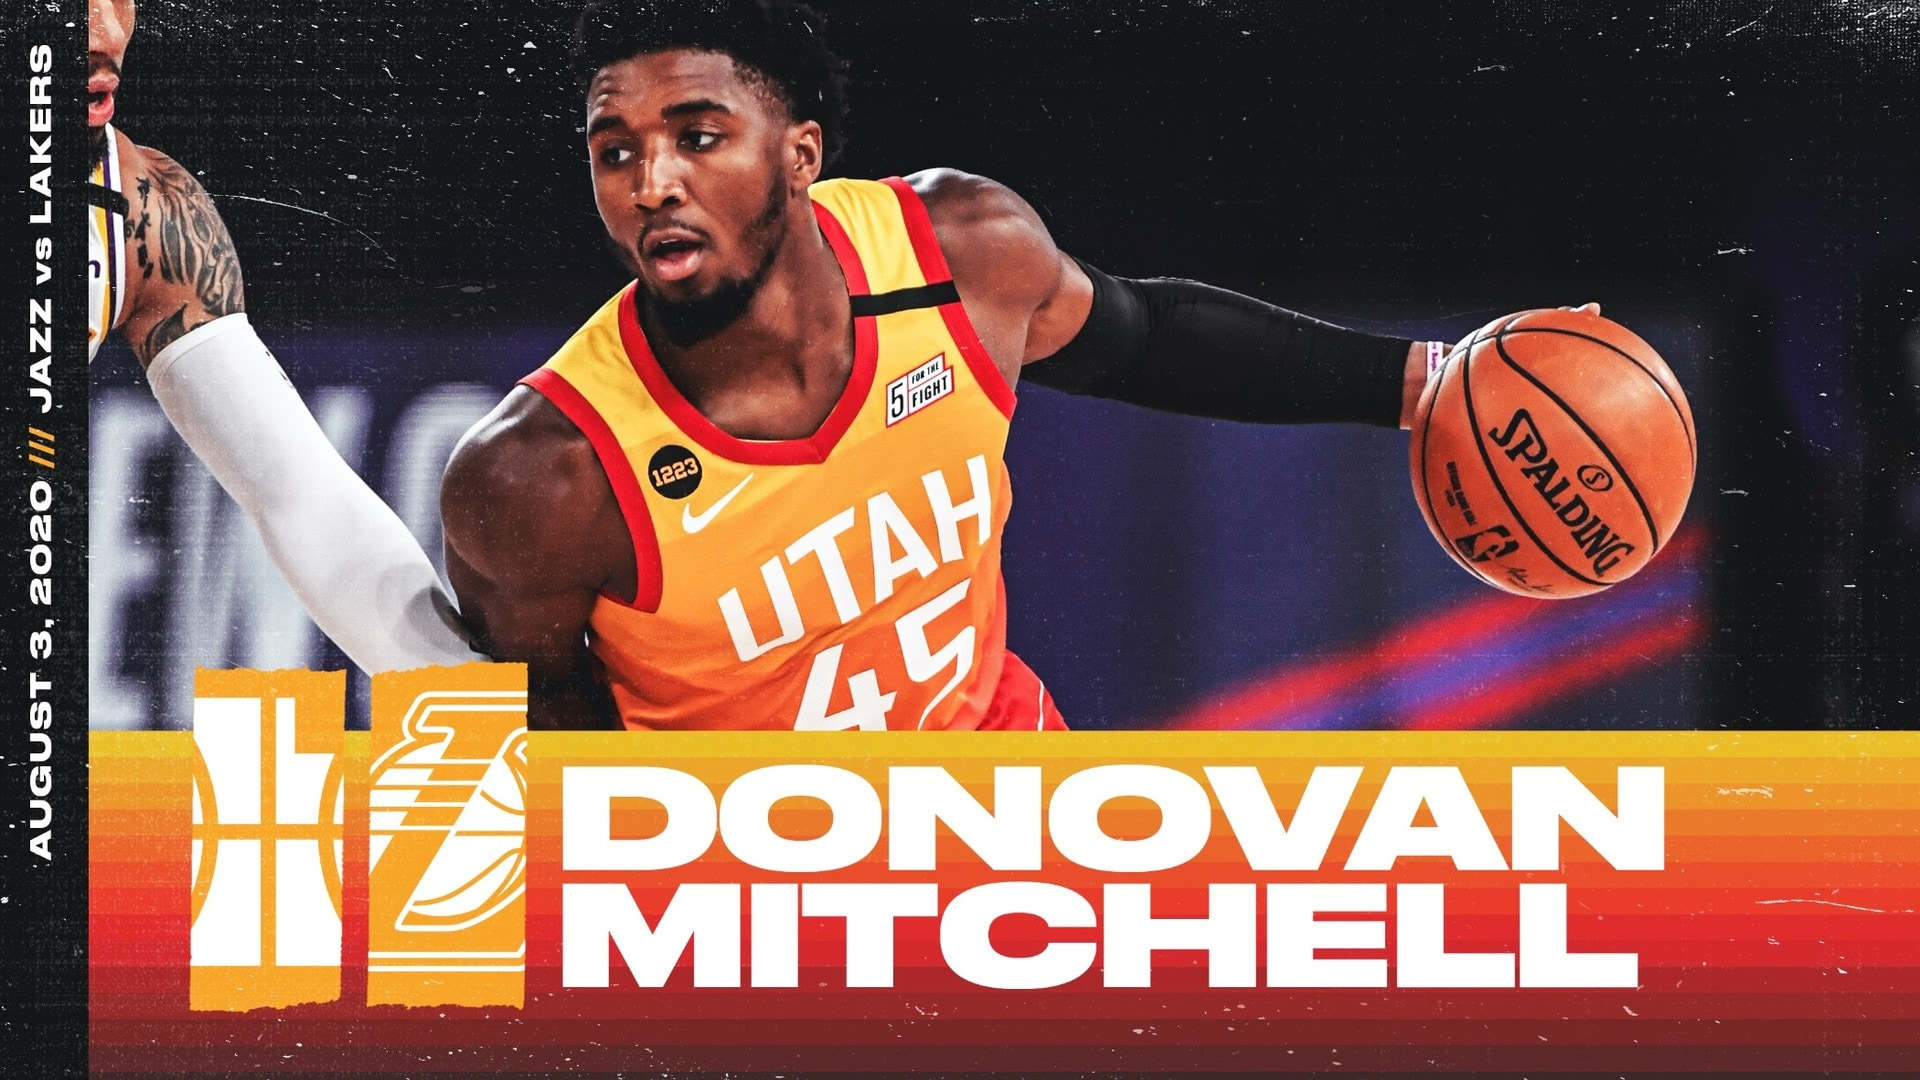 Highlights: Donovan Mitchell—33 points, 5 rebounds